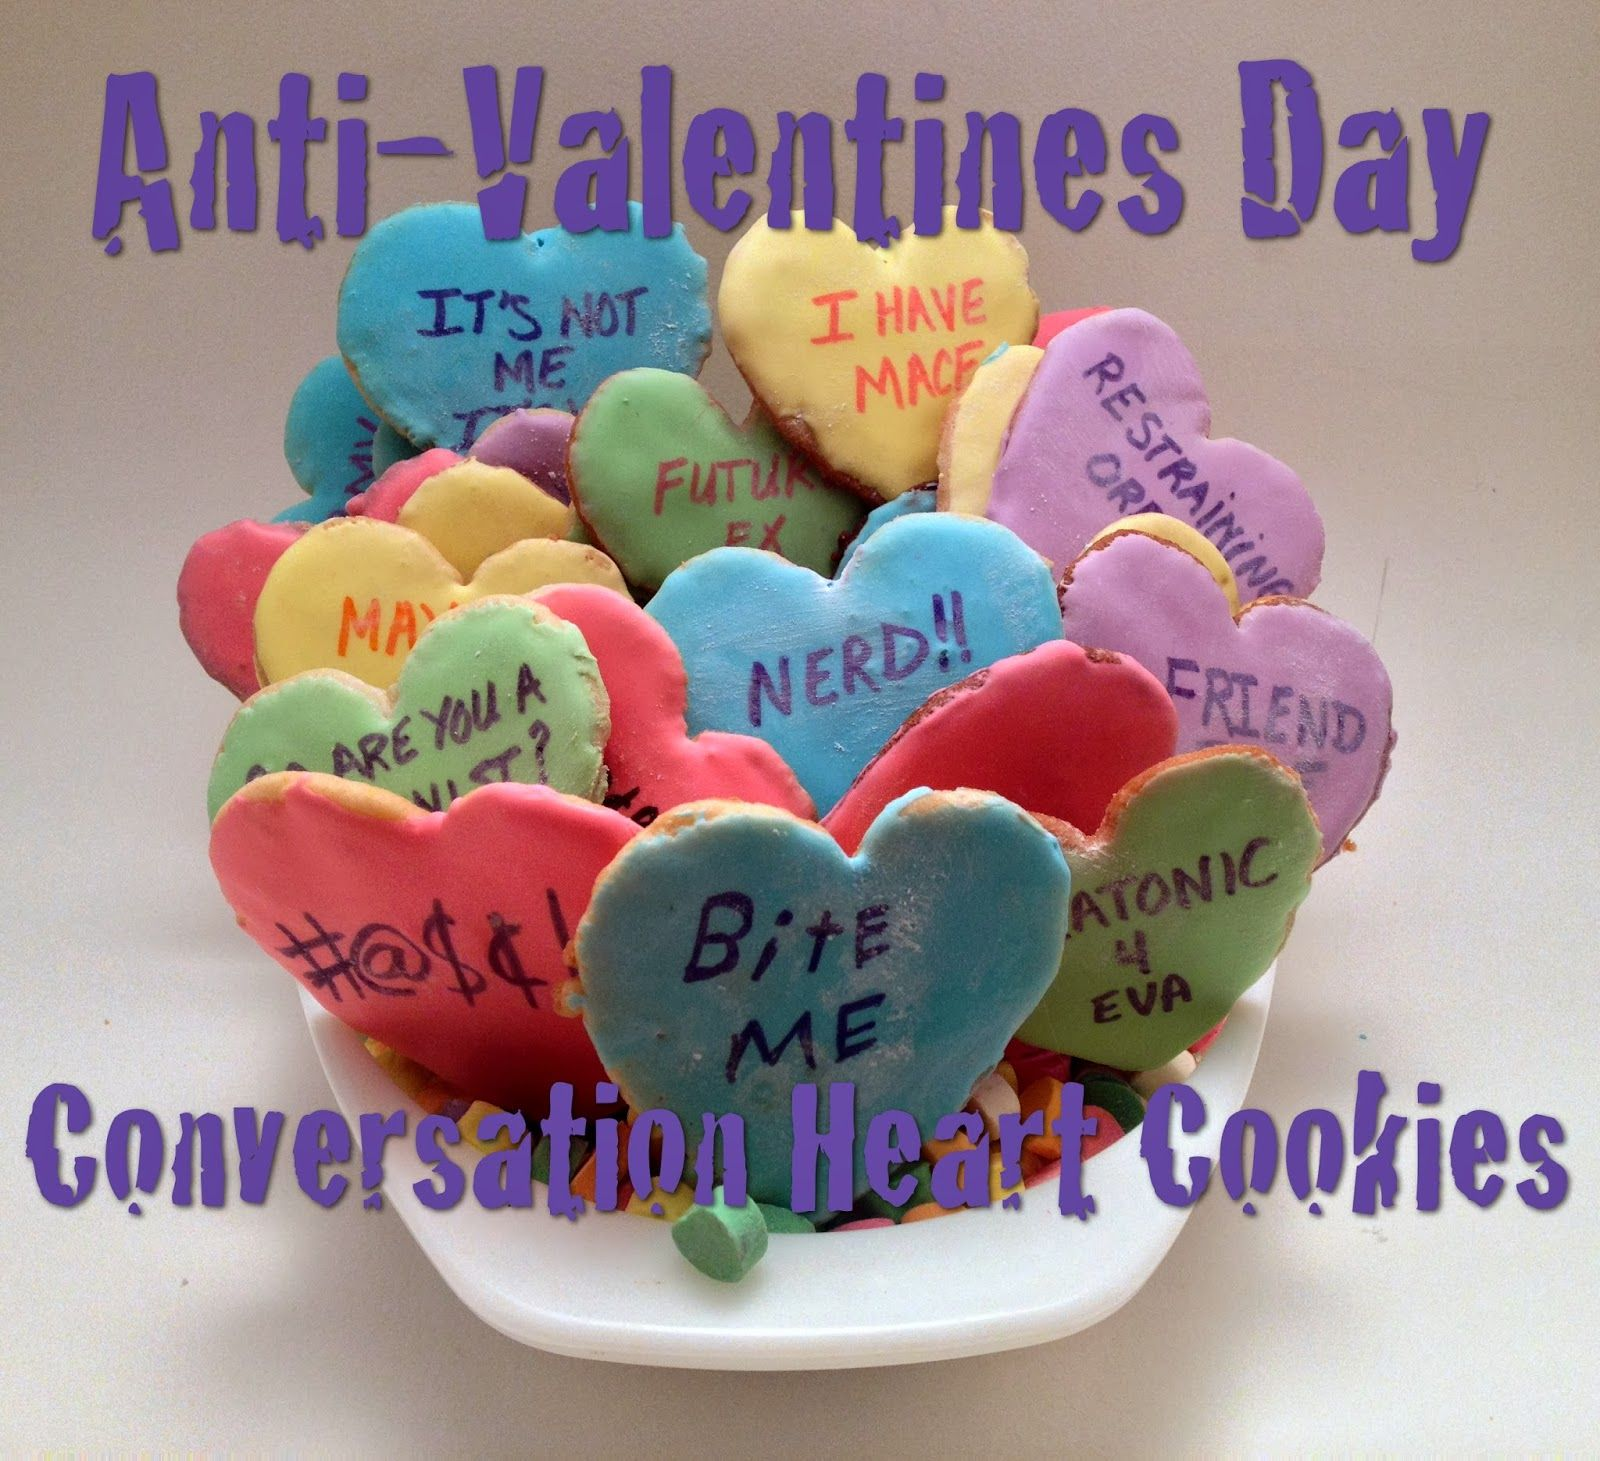 Anti Valentines Day Conversation Heart Cookies